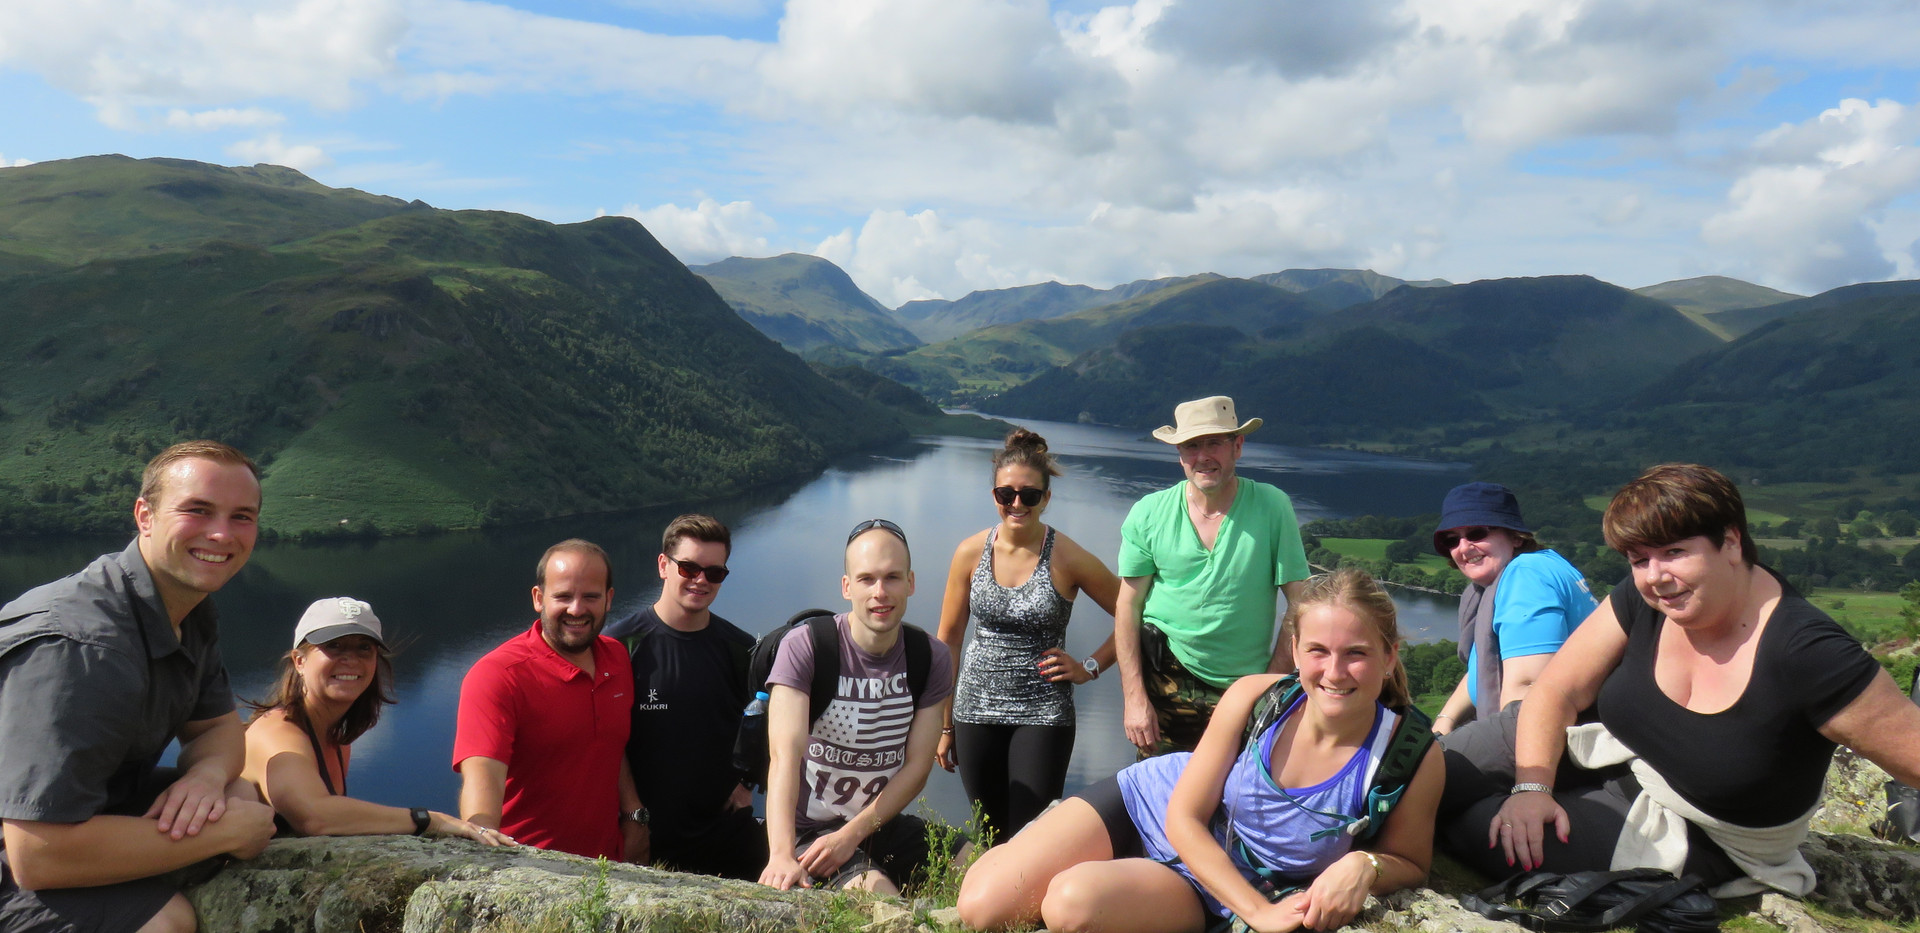 Lake Distrcit 2015 Hiking Event | Personal Training Customers | Client | Fitness | Mountains | Gym | Active | Exercise | Trainer